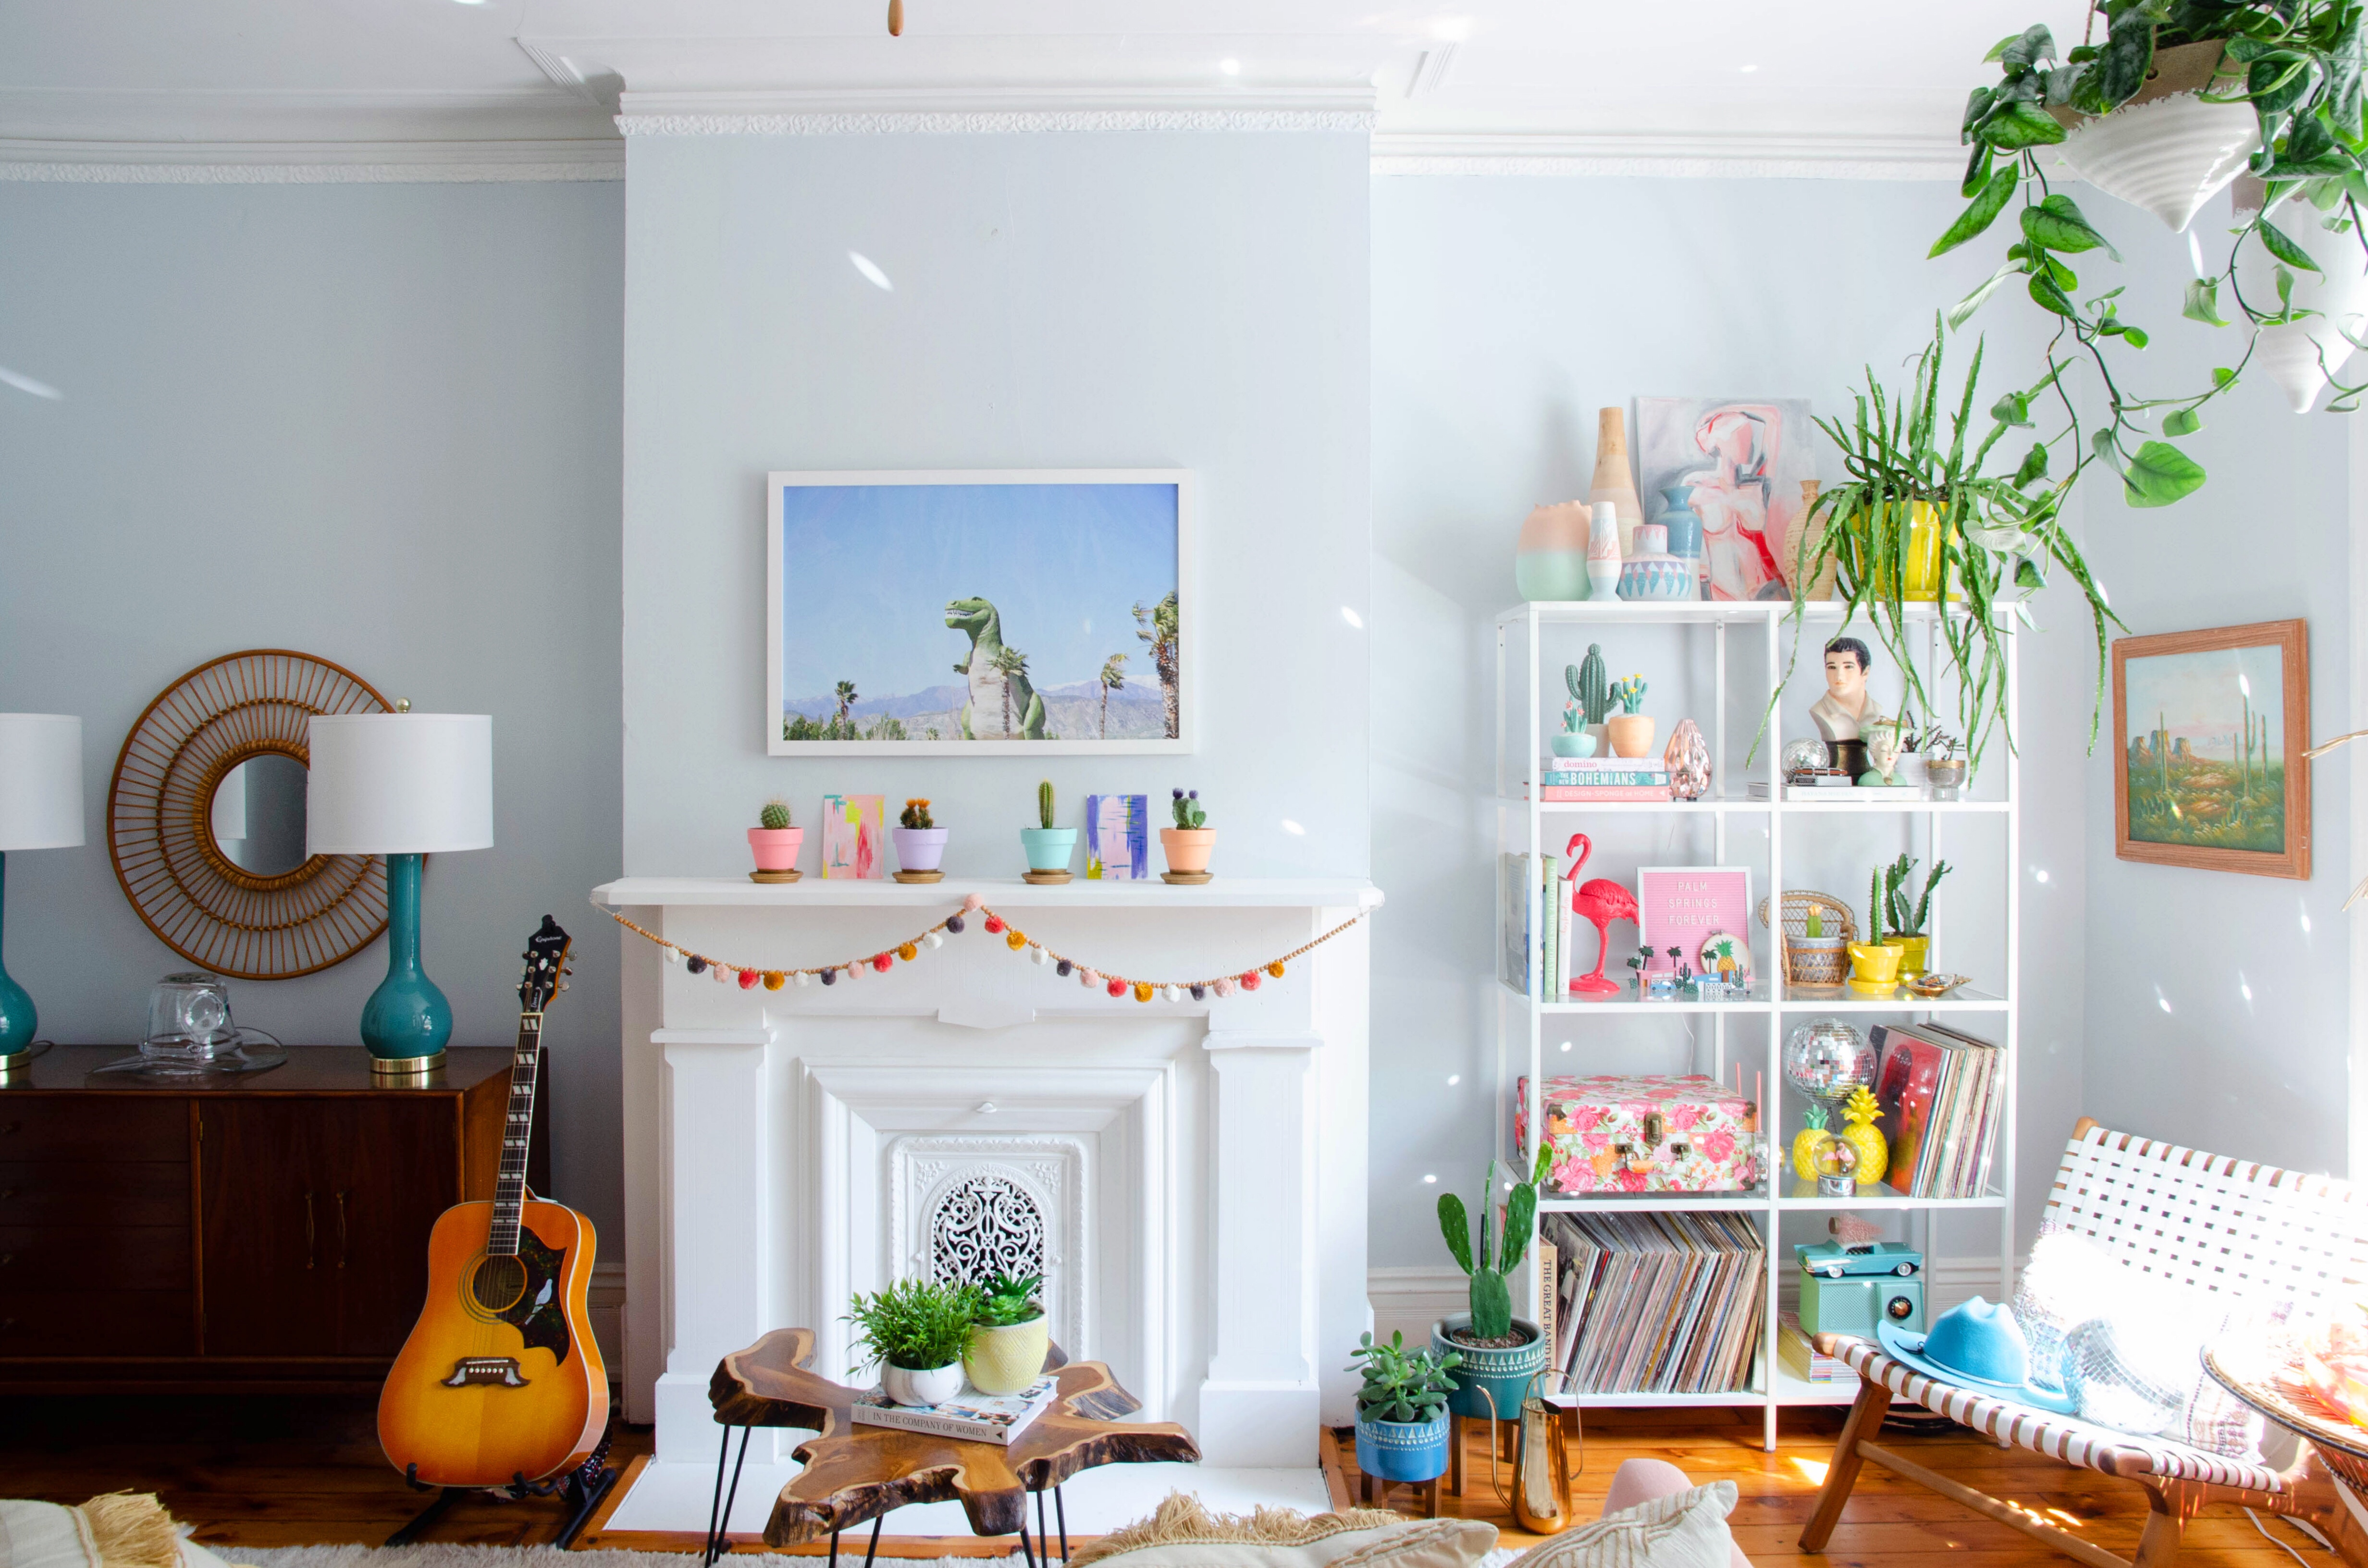 Home Tour on Apartment Therapy